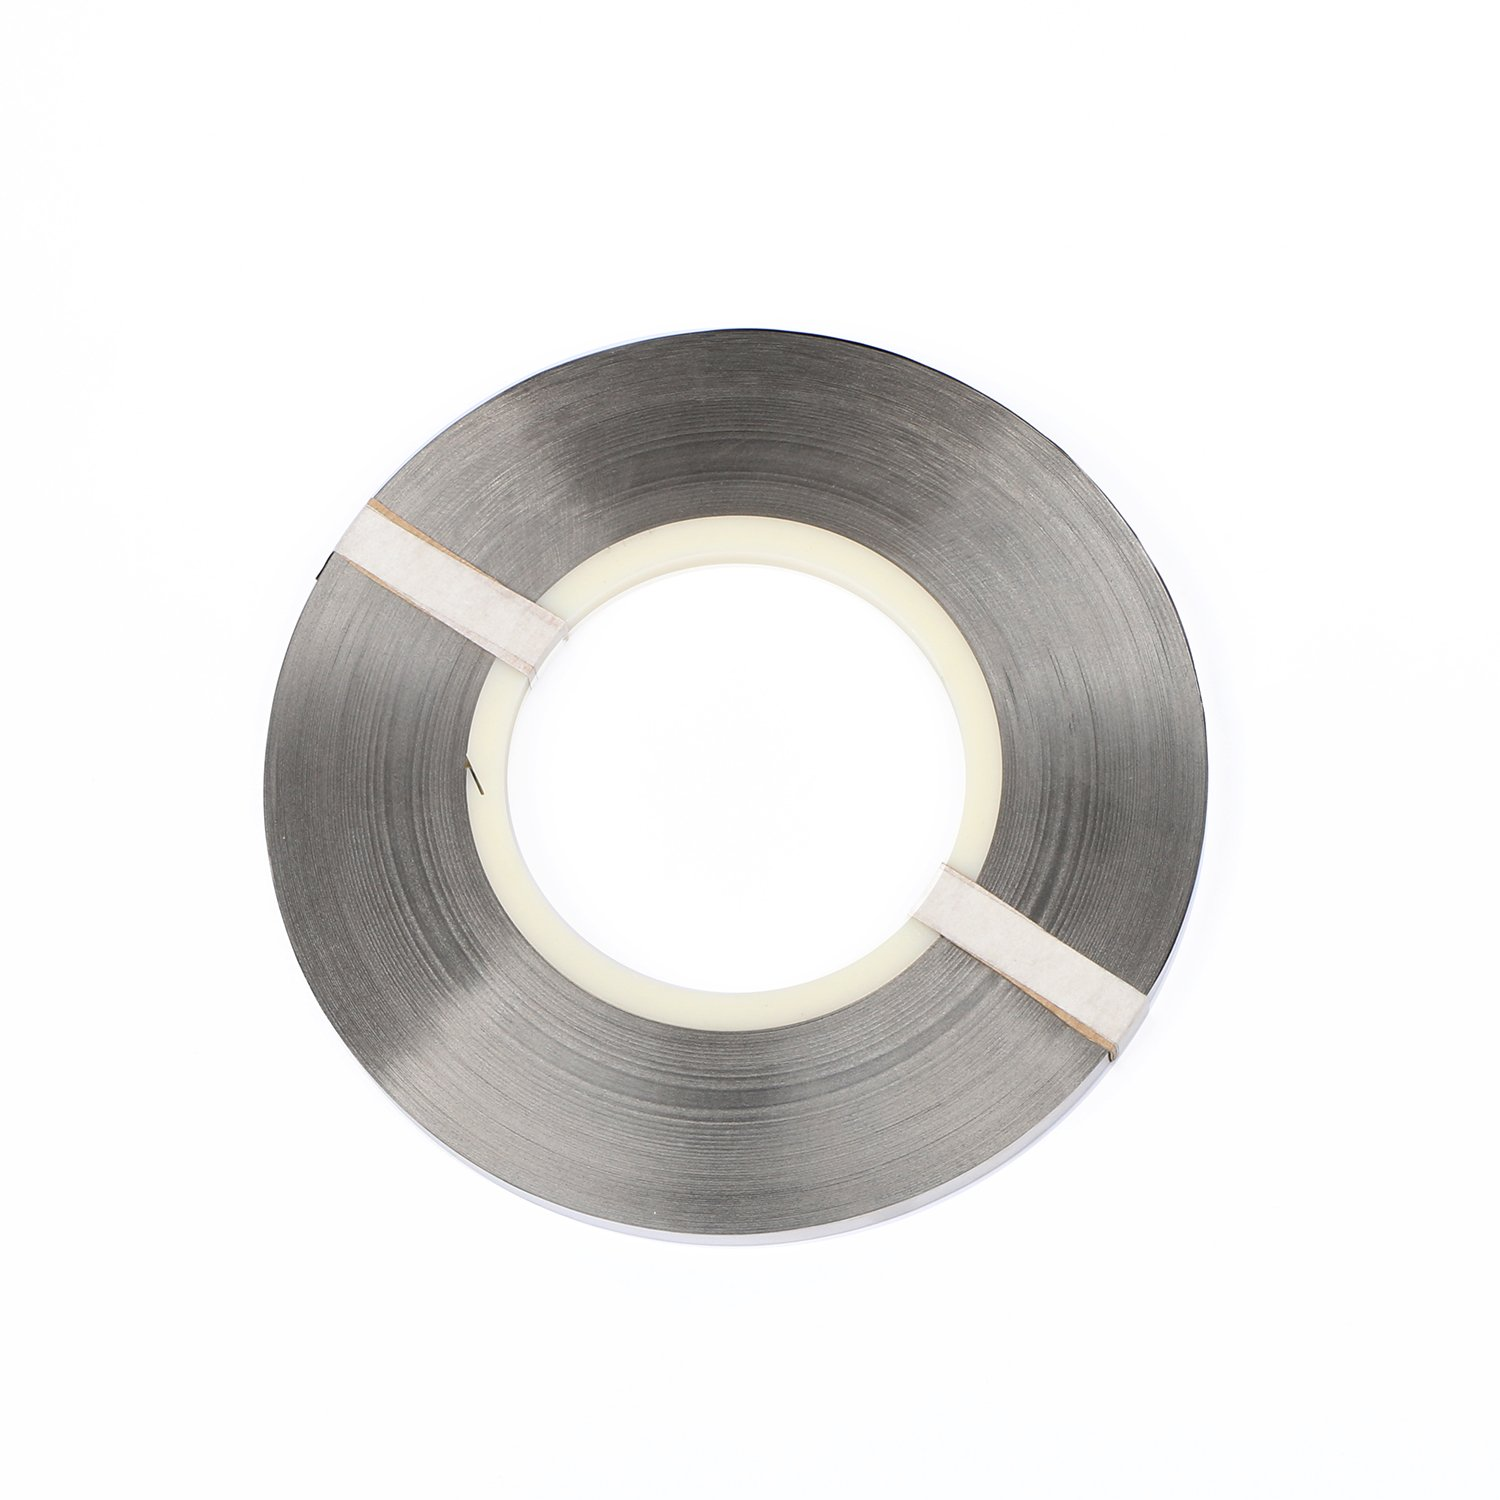 Pure Nickel Strip- 1kg (2.2lbs) Roll of 0.15x8mm 99.6% Nickel for 18650 Soldering, Li-Po Battery, NiMh and NiCd Battery Pack Battery and Spot Welding, by U.S. Solid by U.S. Solid